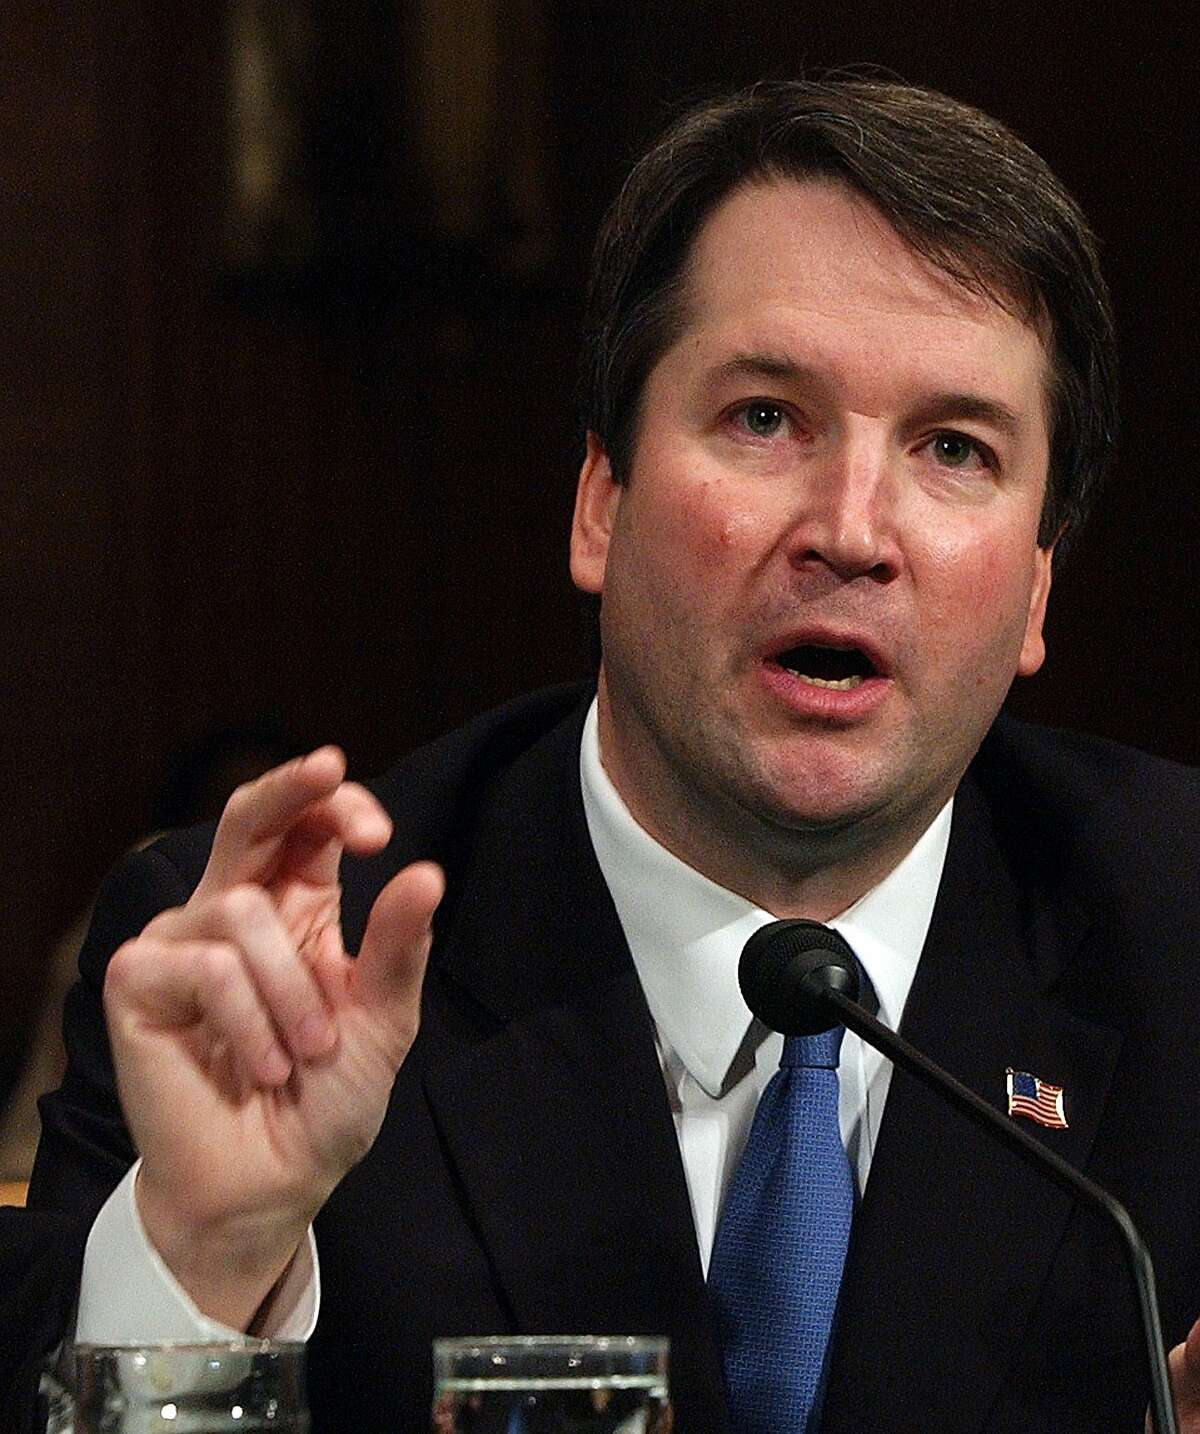 Brett Kavanaugh appears before the Senate Judiciary Committee on Capitol Hill Tuesday, April 27, 2004, on his nomination to be U. S. circuit judge for the District of Columbia Circuit. (AP Photo/Dennis Cook)